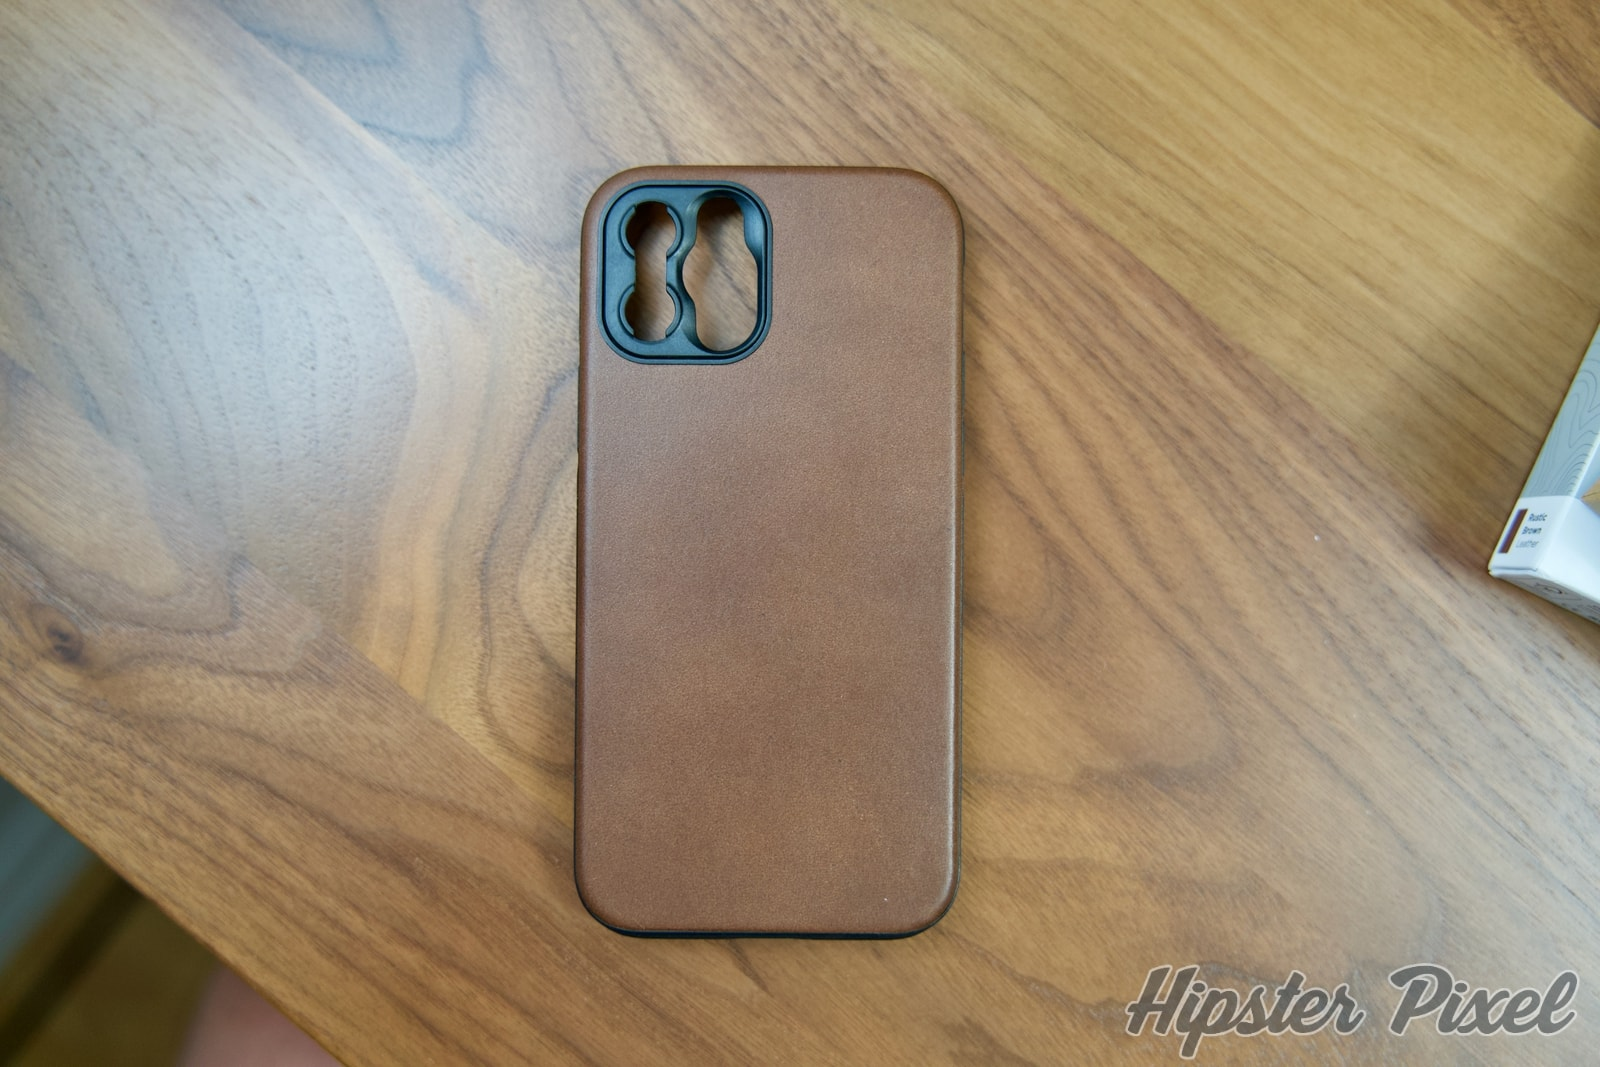 Nomad Modern Leather Case for Moment Lenses [Review]